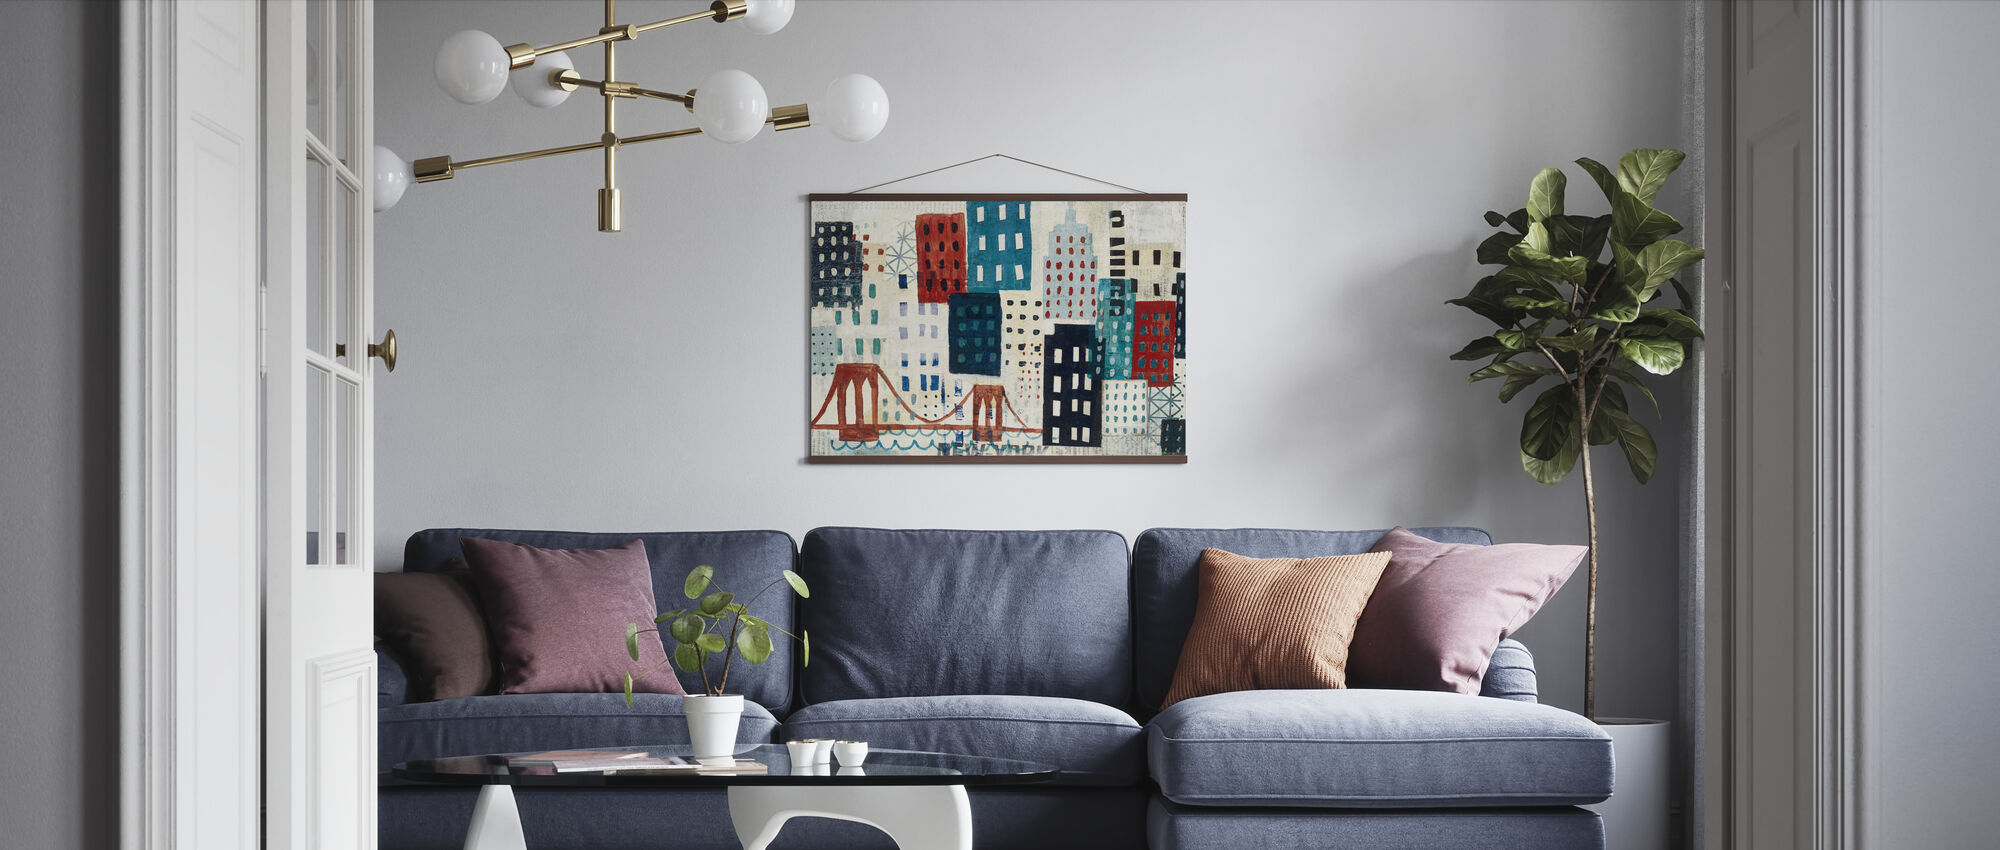 New York Skyline Collage - Blauw I - Poster - Woonkamer